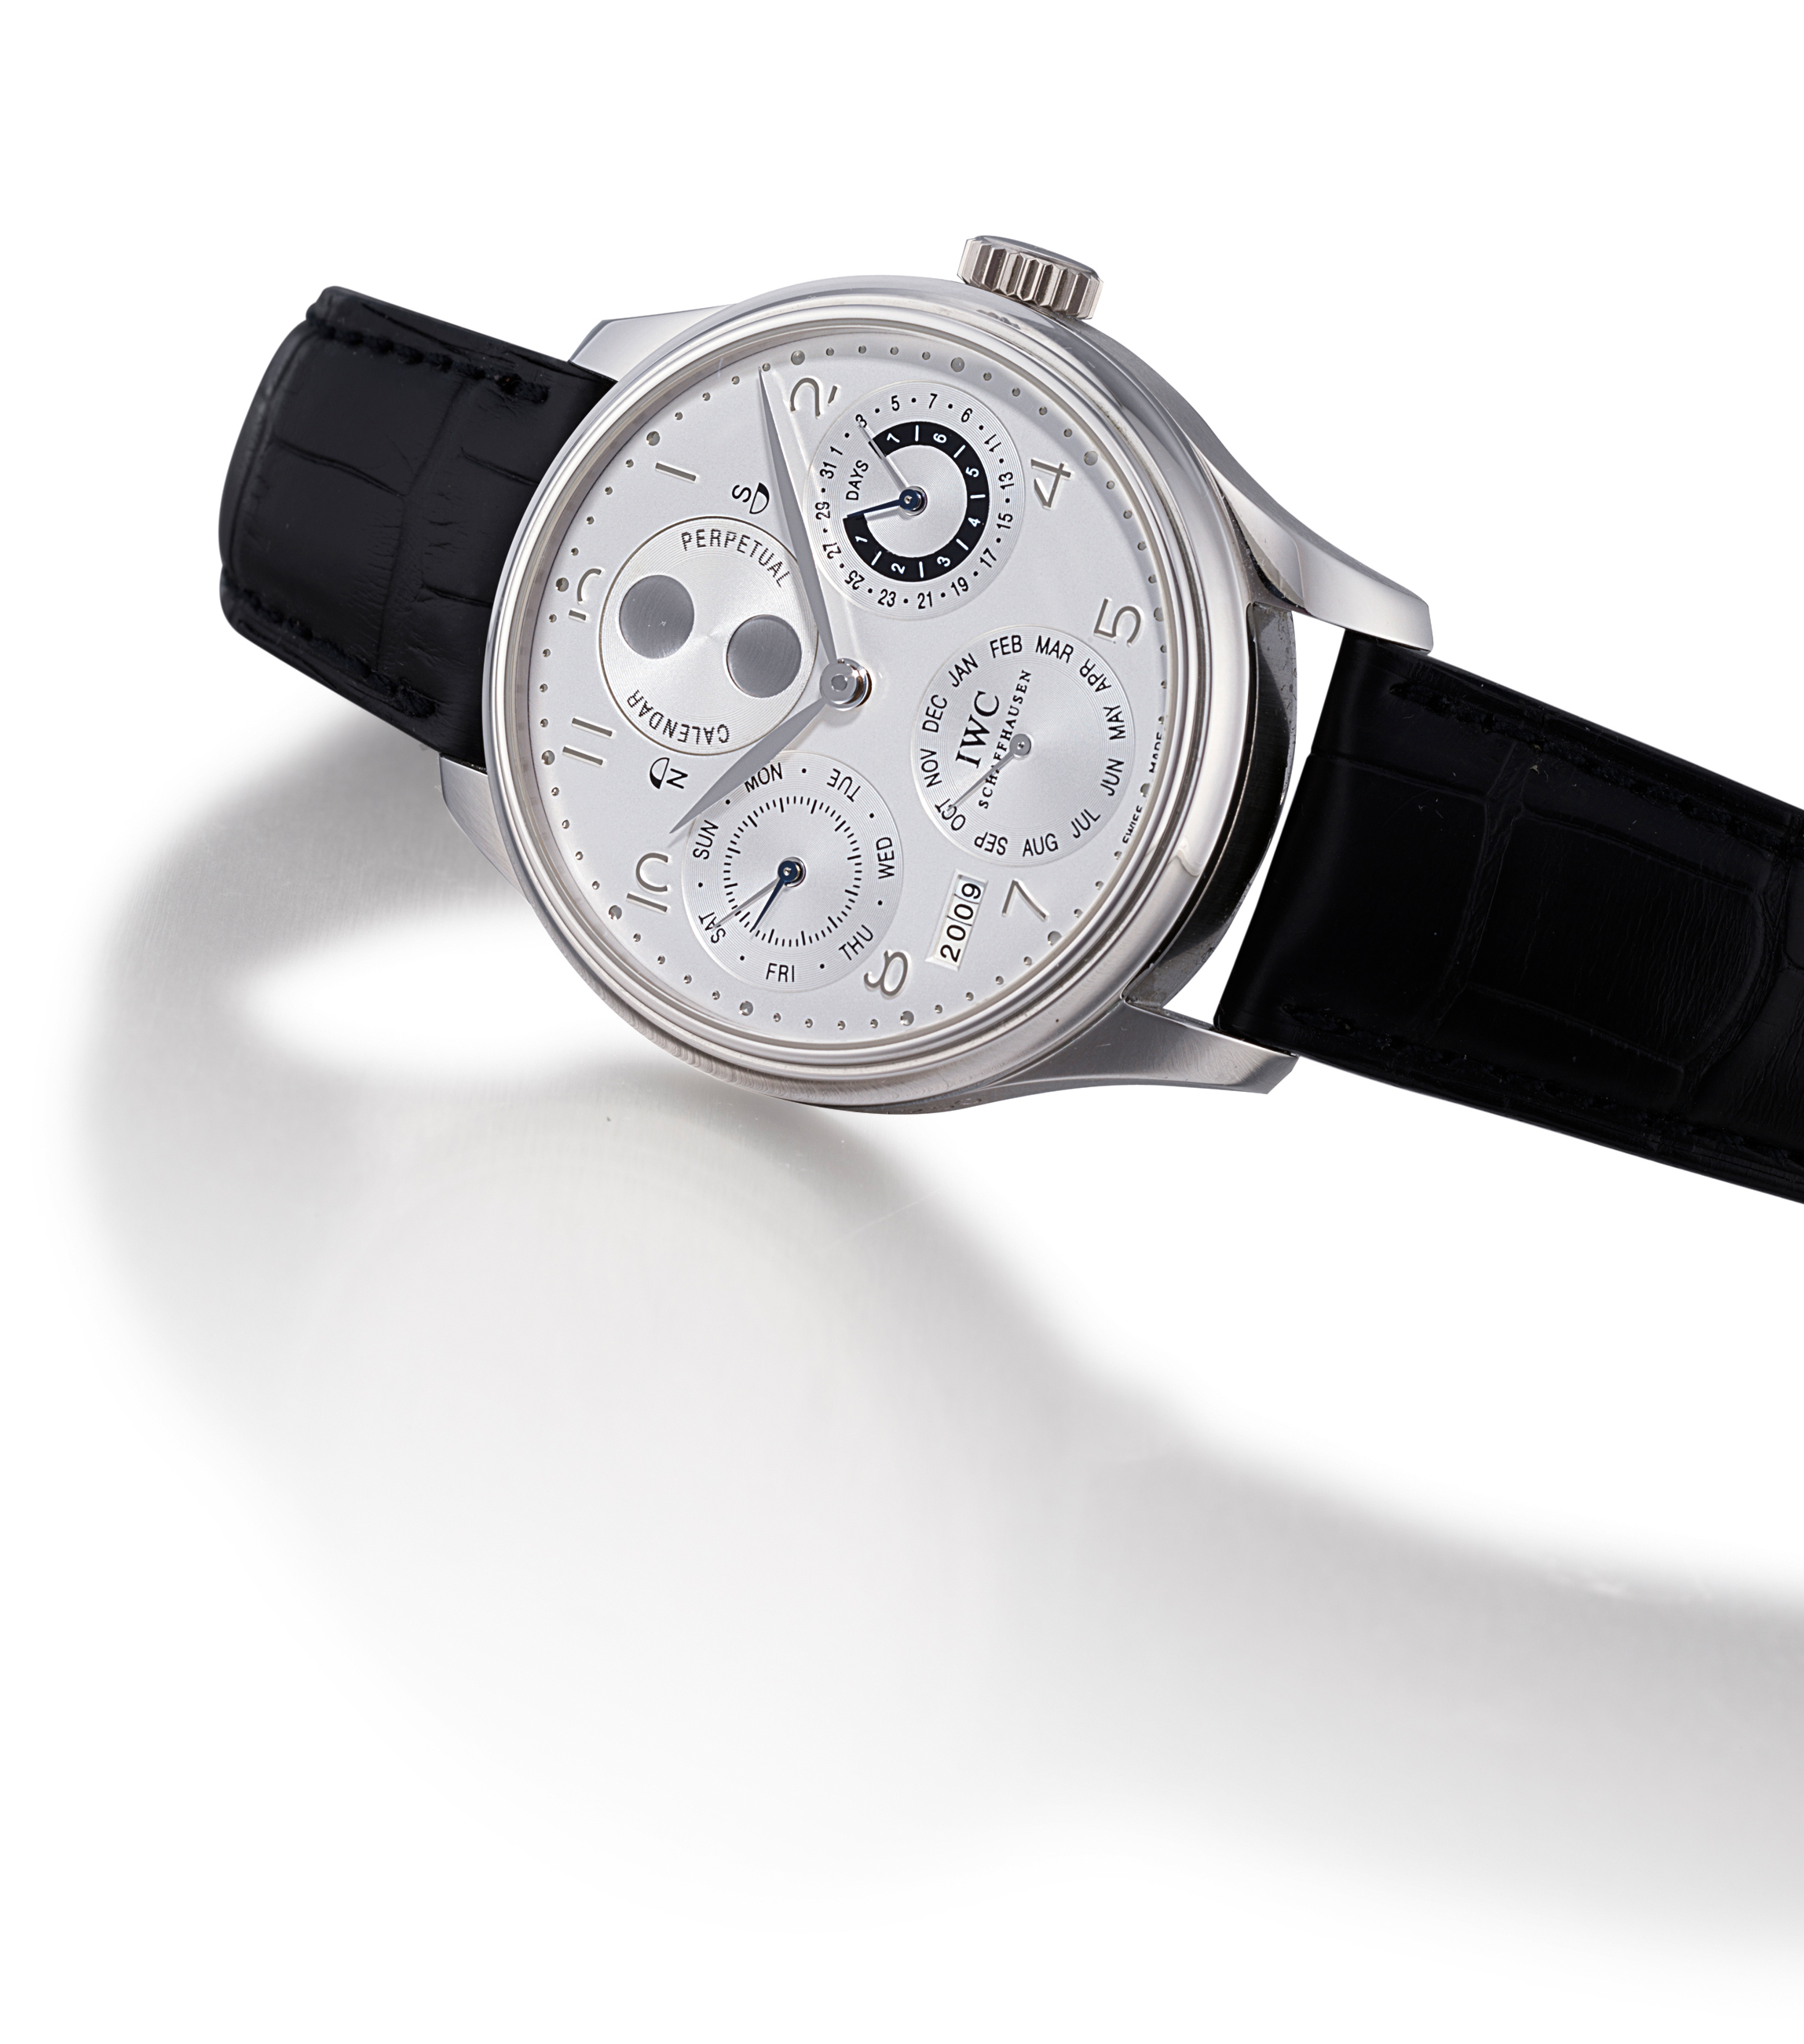 IWC, PORTUGUESE PERPETUAL  PLATINUM AUTOMATIC PERPETUAL CALENDAR 7-DAY-GOING WRISTWATCH WITH MOON PHASES AND POWER RESERVE INDICATION, LIMITED EDITION OF 250